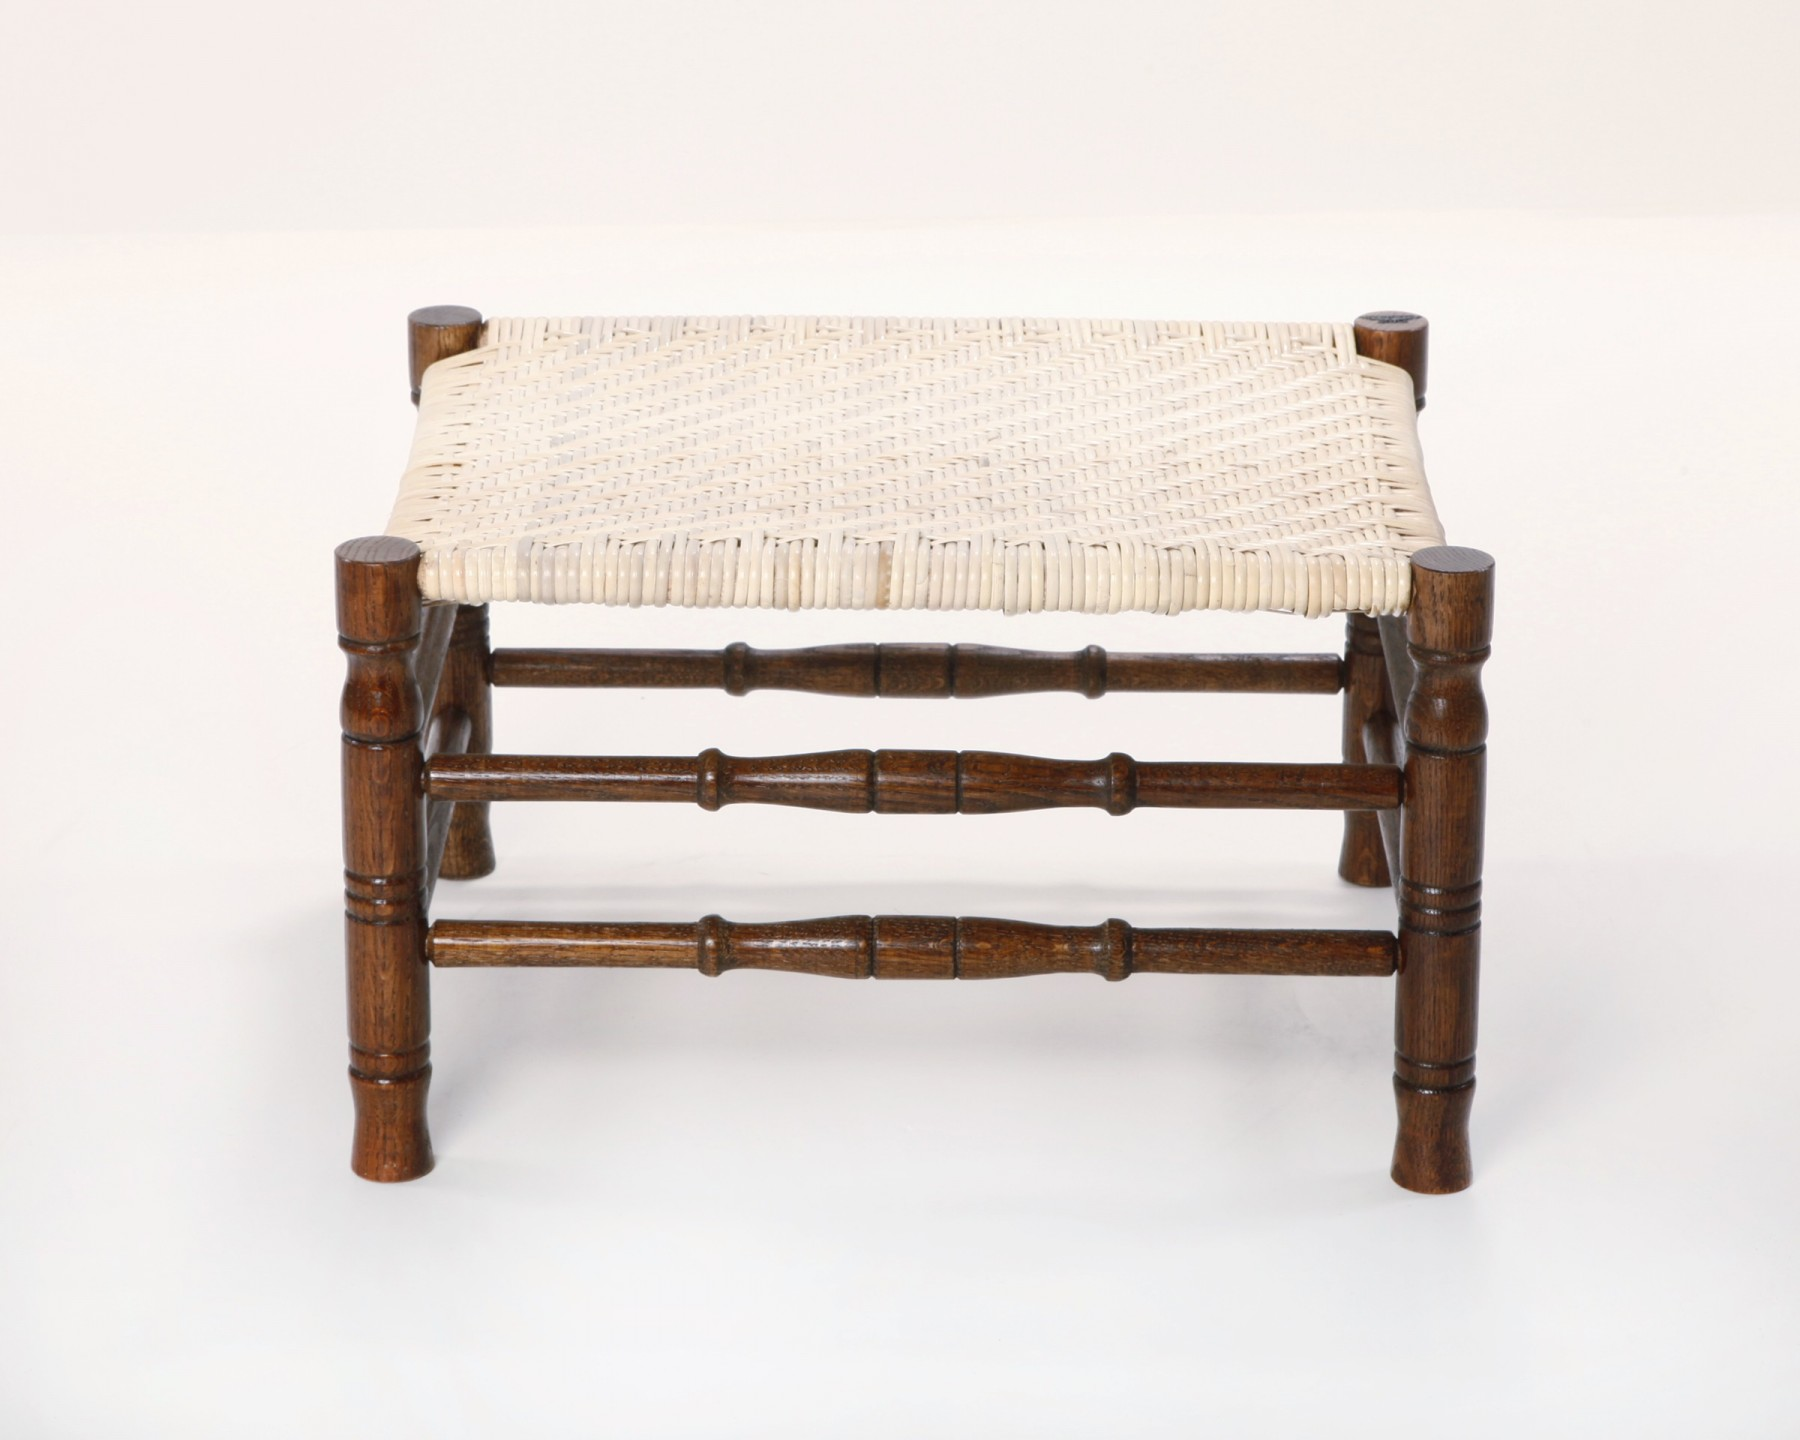 The Brumby Chair Company Brumby Footstool